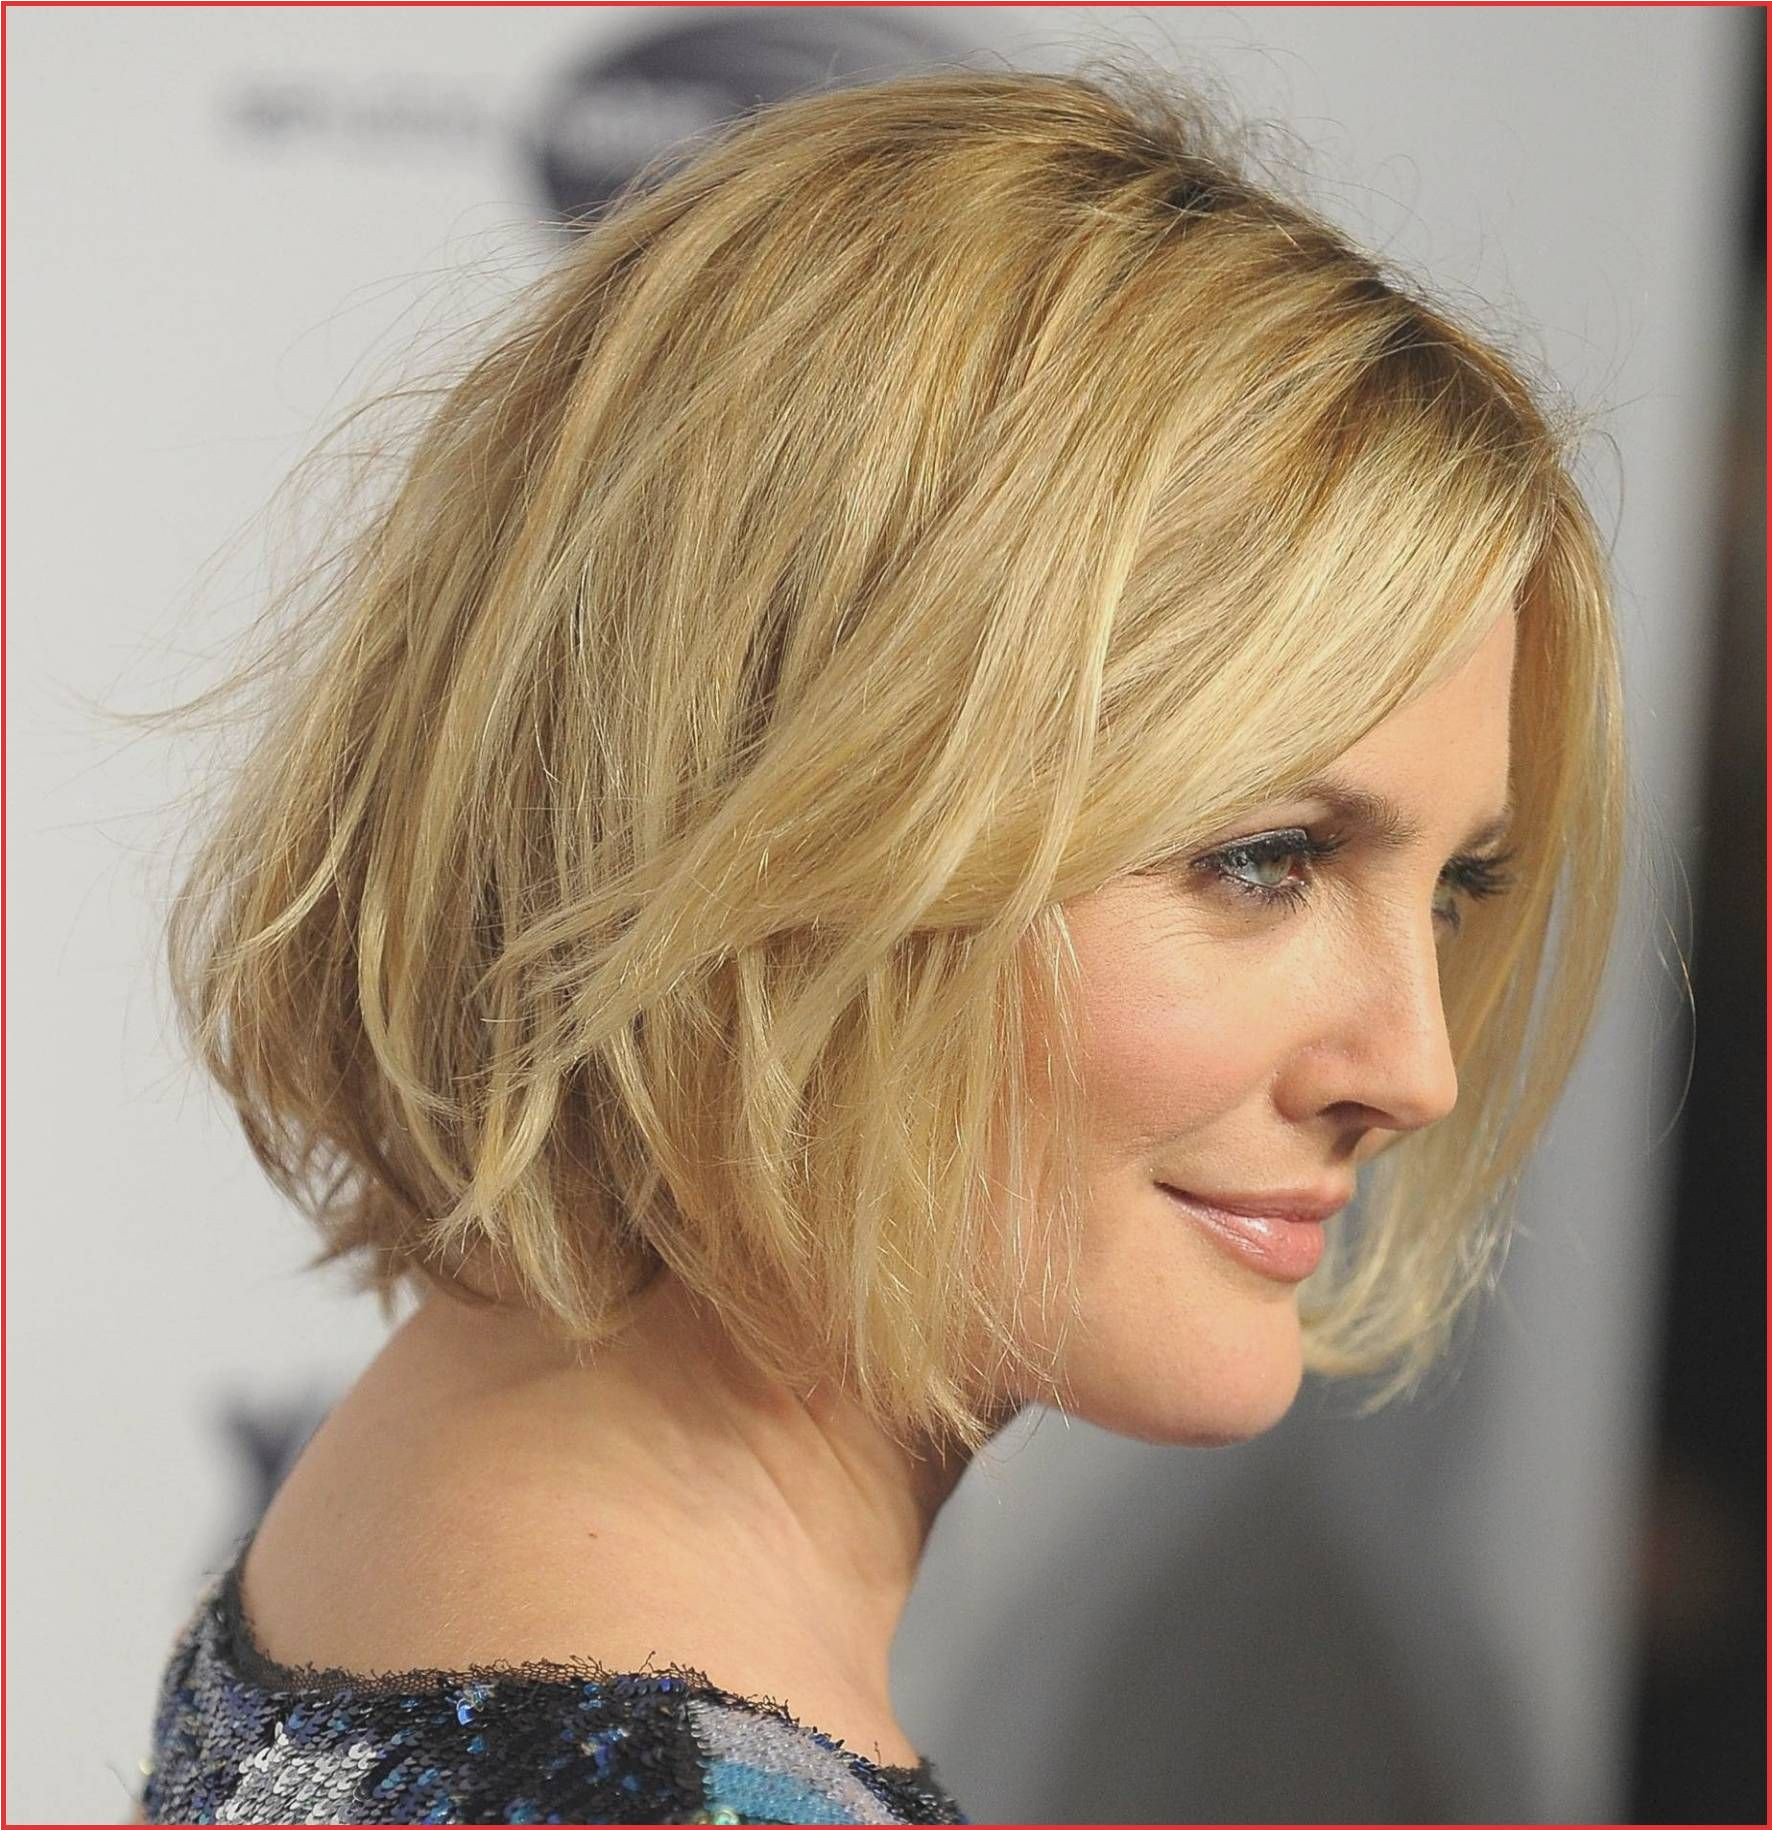 Chin Length Hairstyles for Fine Straight Hair Shoulder Length Hair Styles Beautiful Medium Length Bob Hairstyles